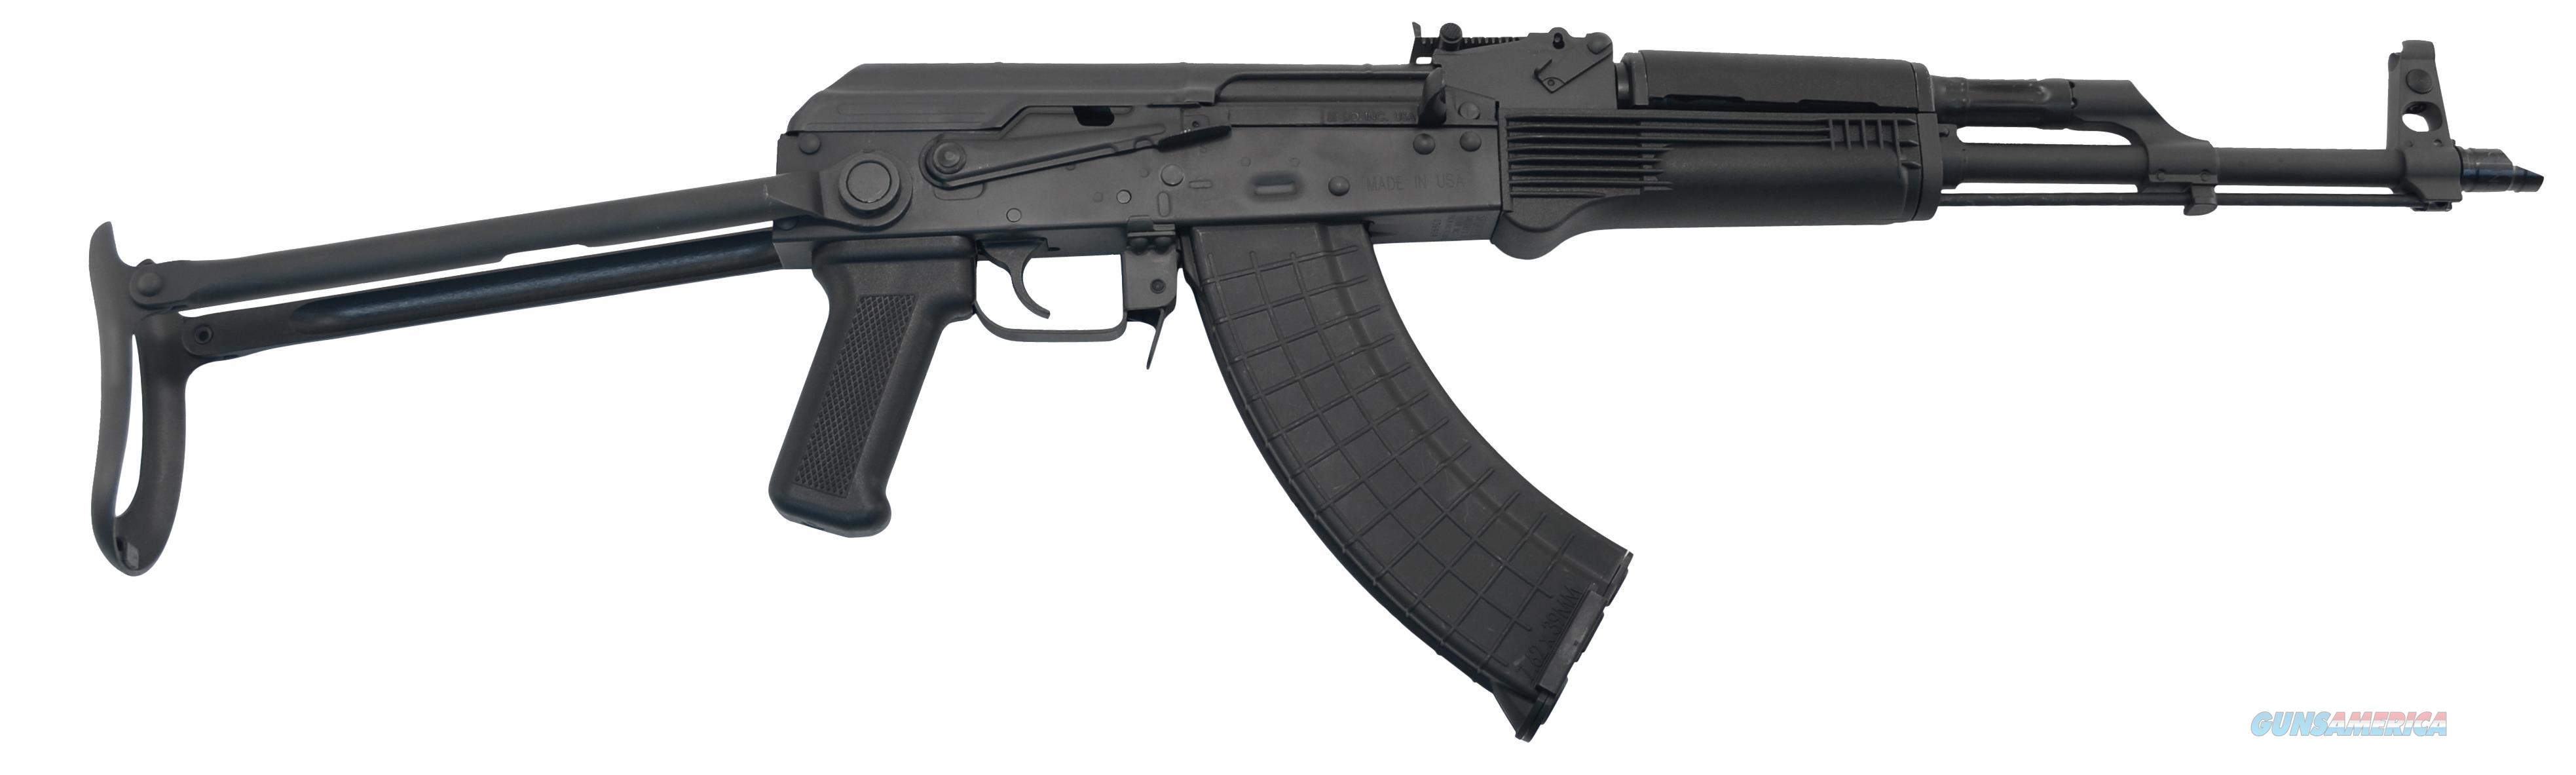 "I.O. INC. AKM247 7.62X39 16.5"" 30RD IODM2003  Guns > Rifles > AK-47 Rifles (and copies) > Folding Stock"